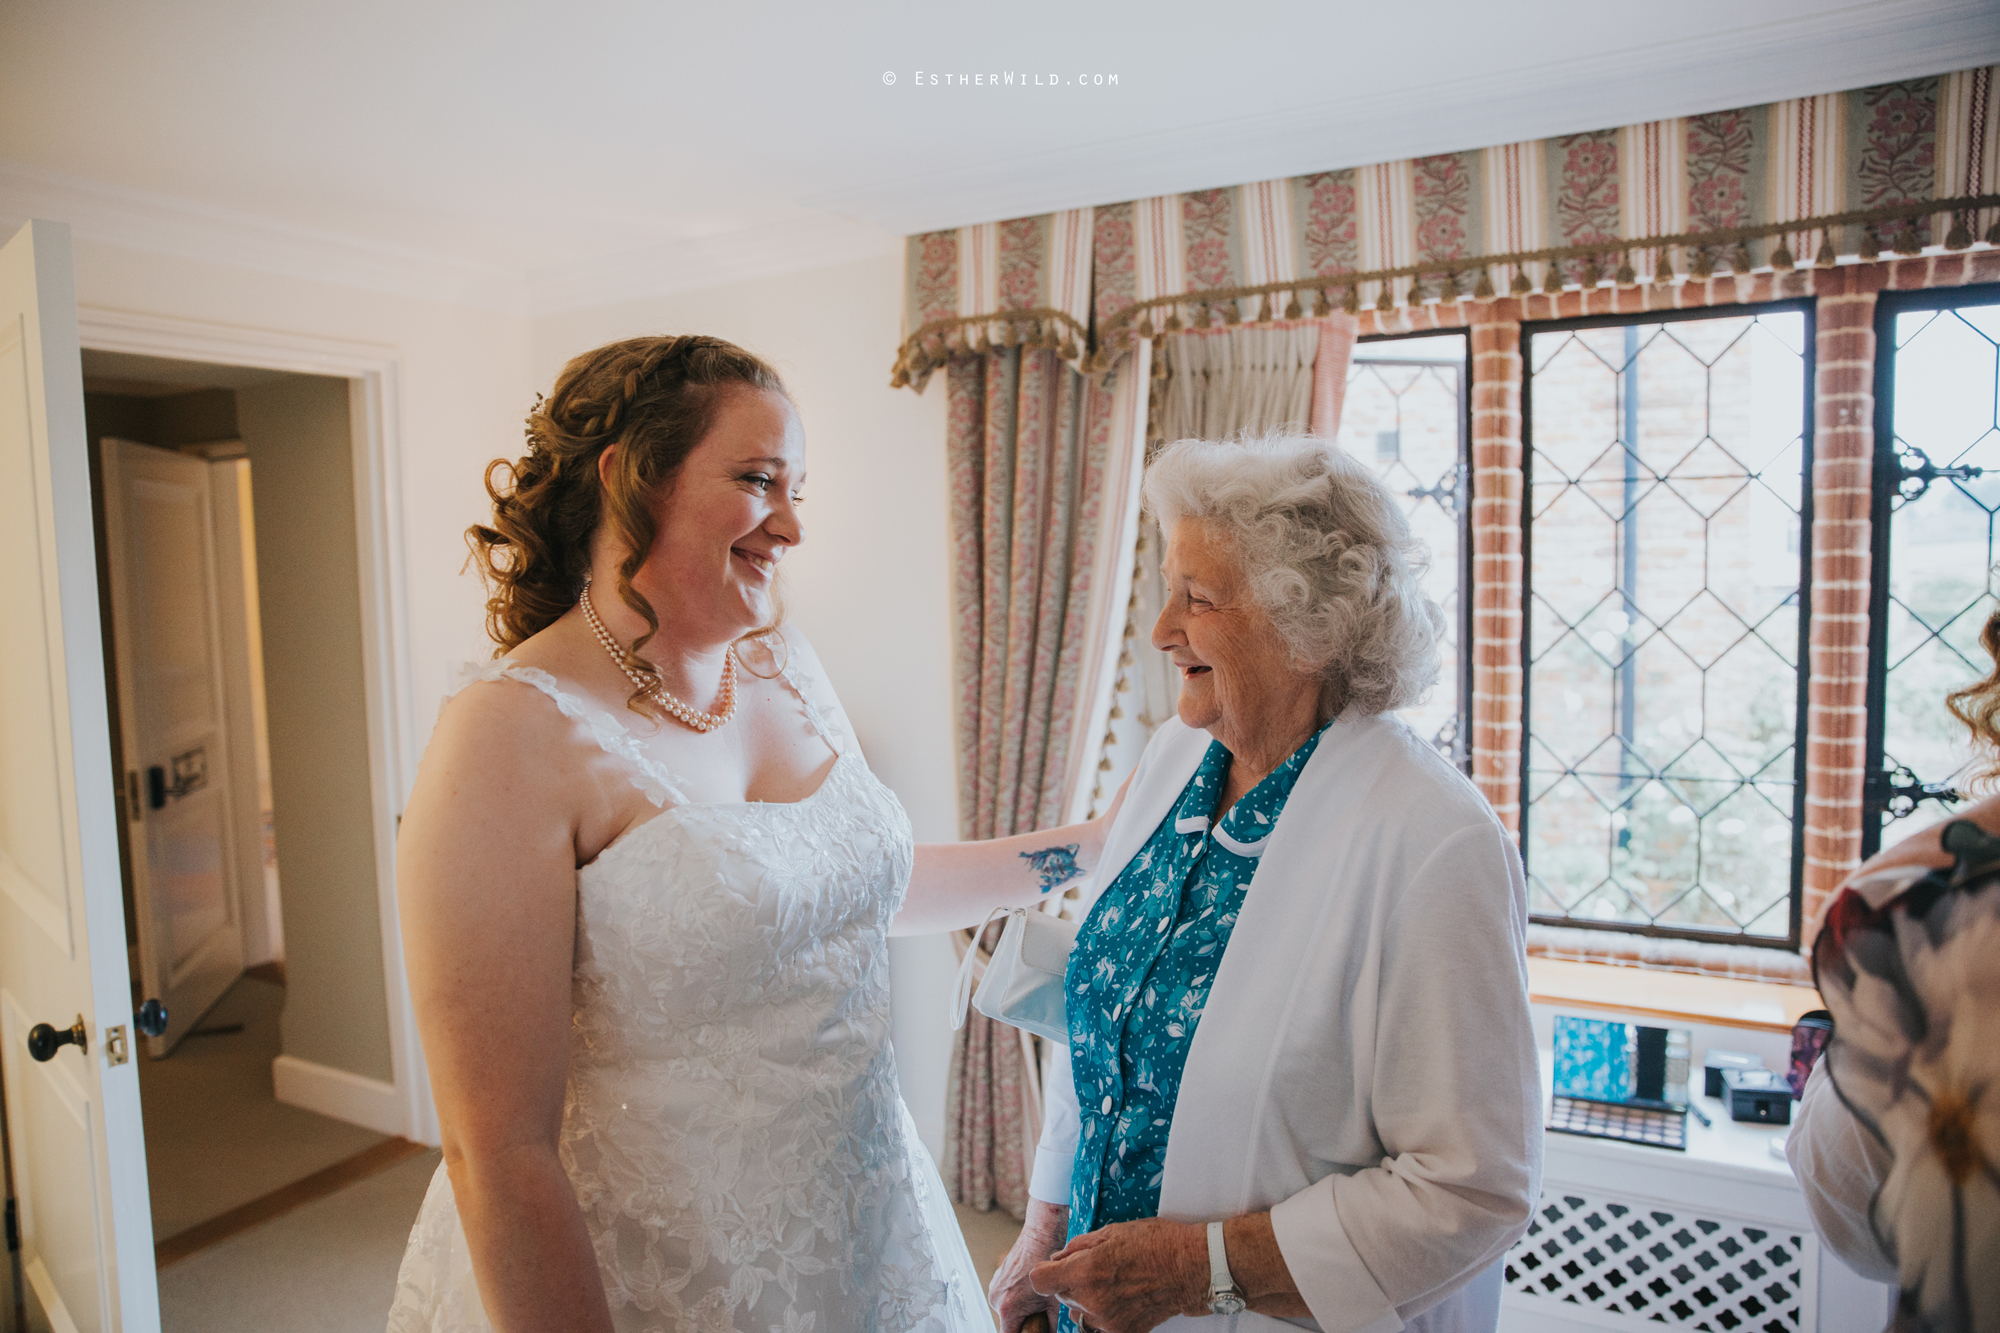 Old_Hall_Ely_Wedding_Esther_Wild_Photographer_IMG_0715.jpg